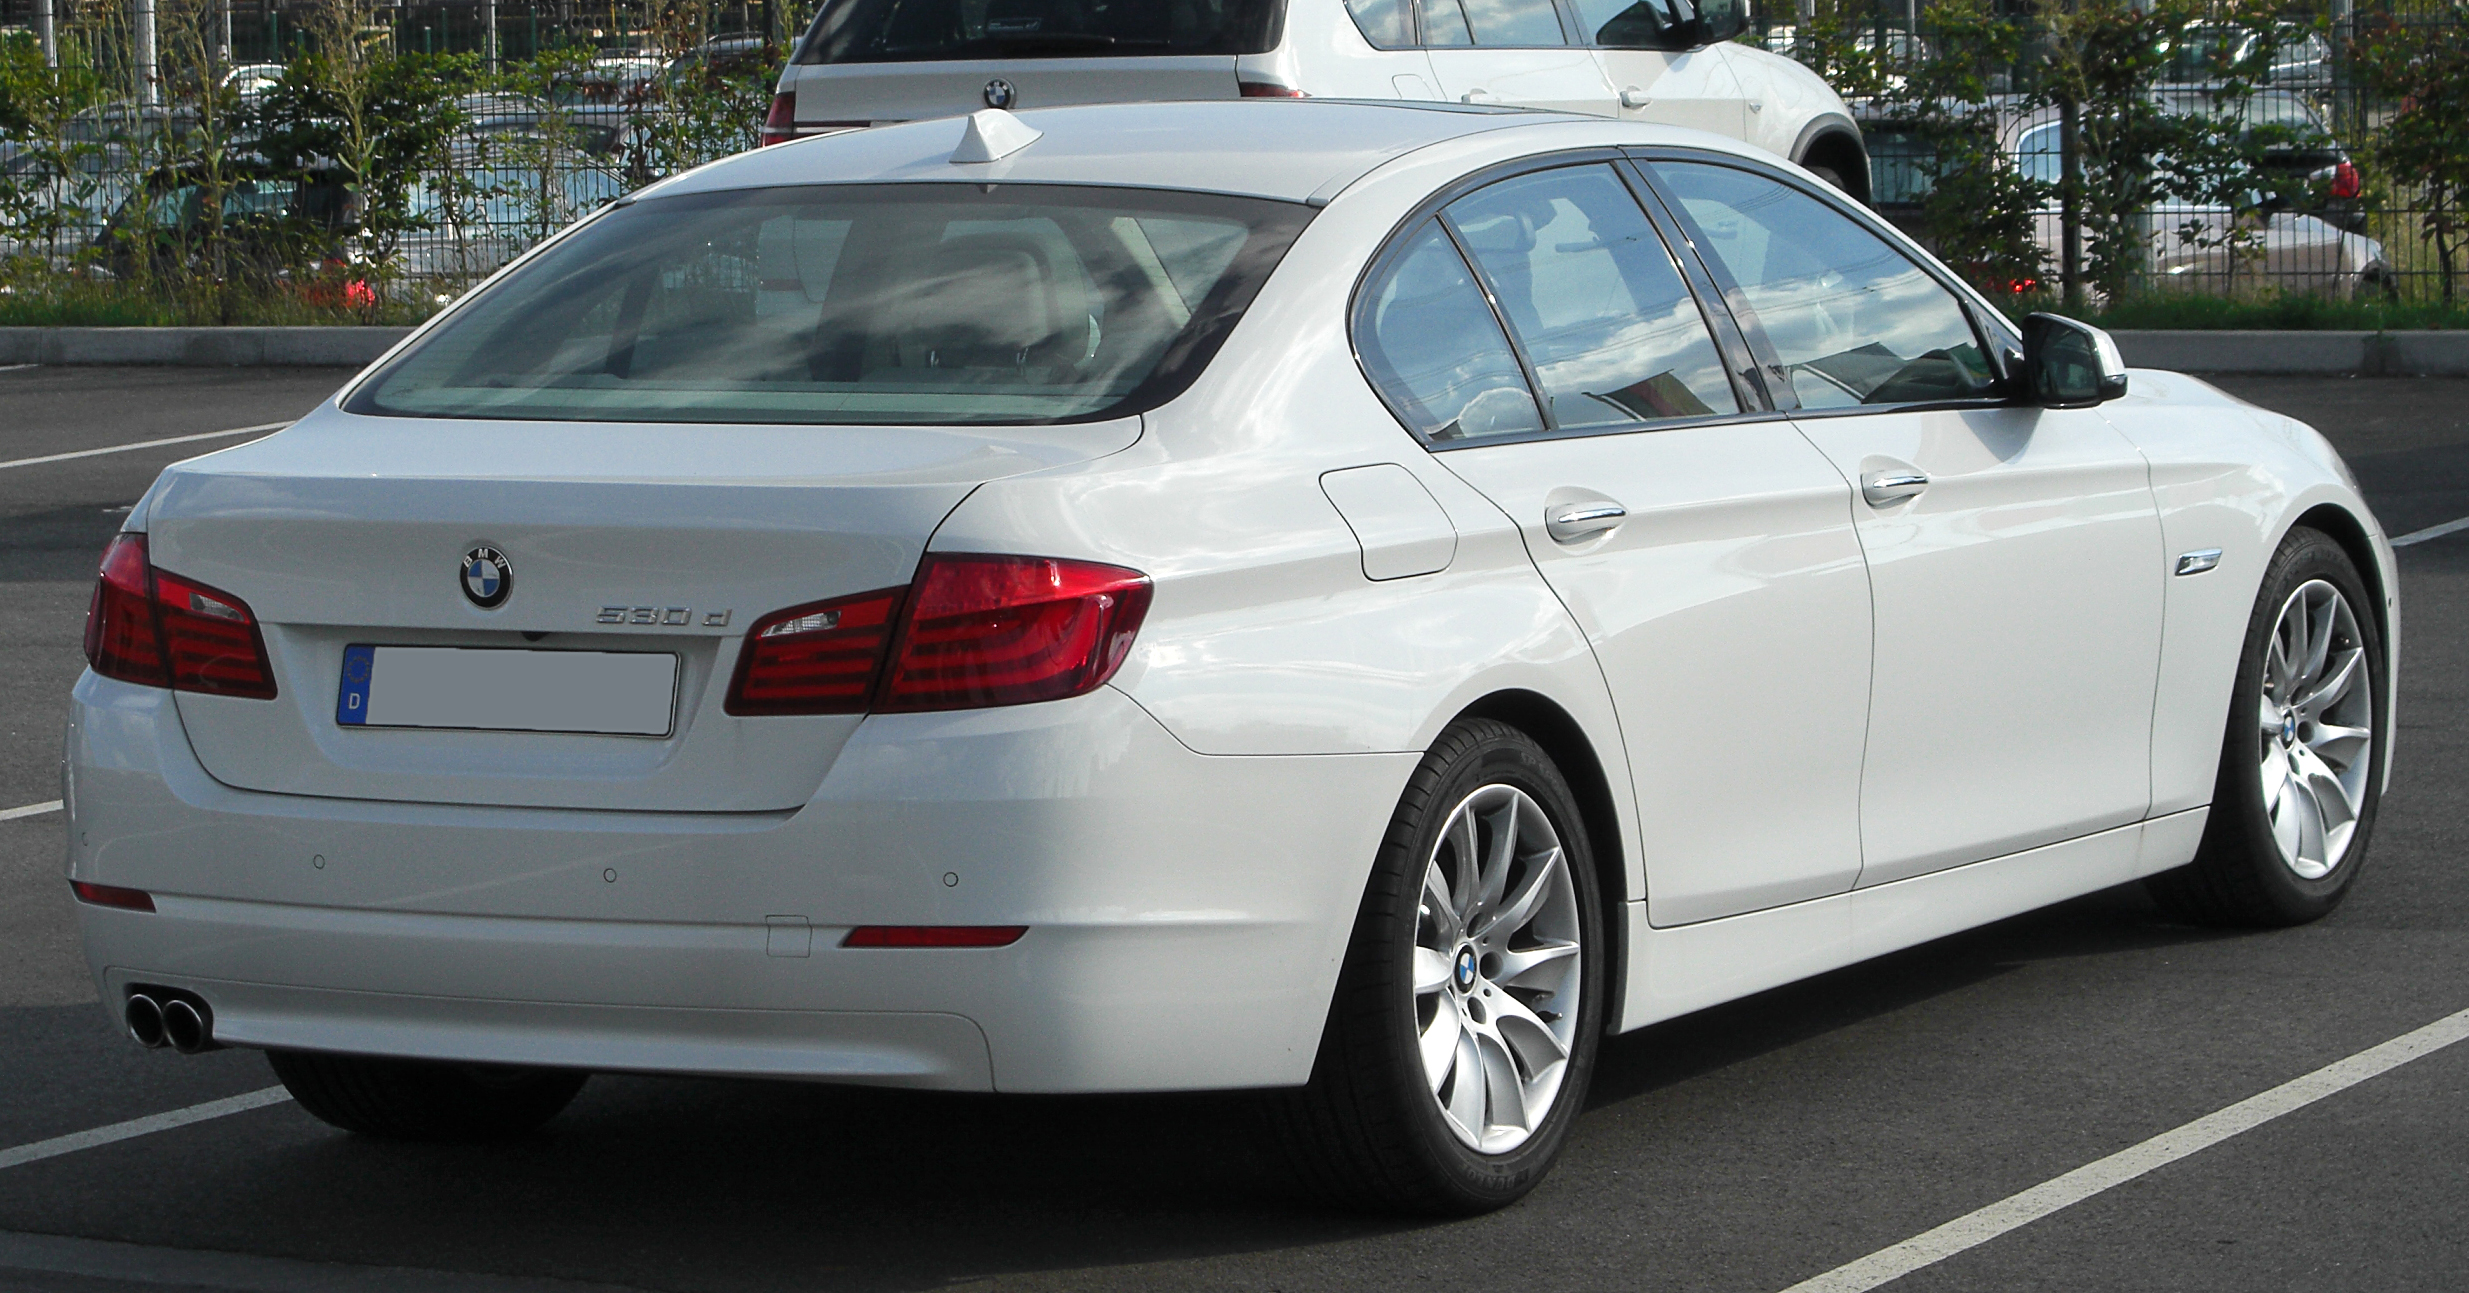 File:BMW 530d (F10) rear-1 20100821.jpg